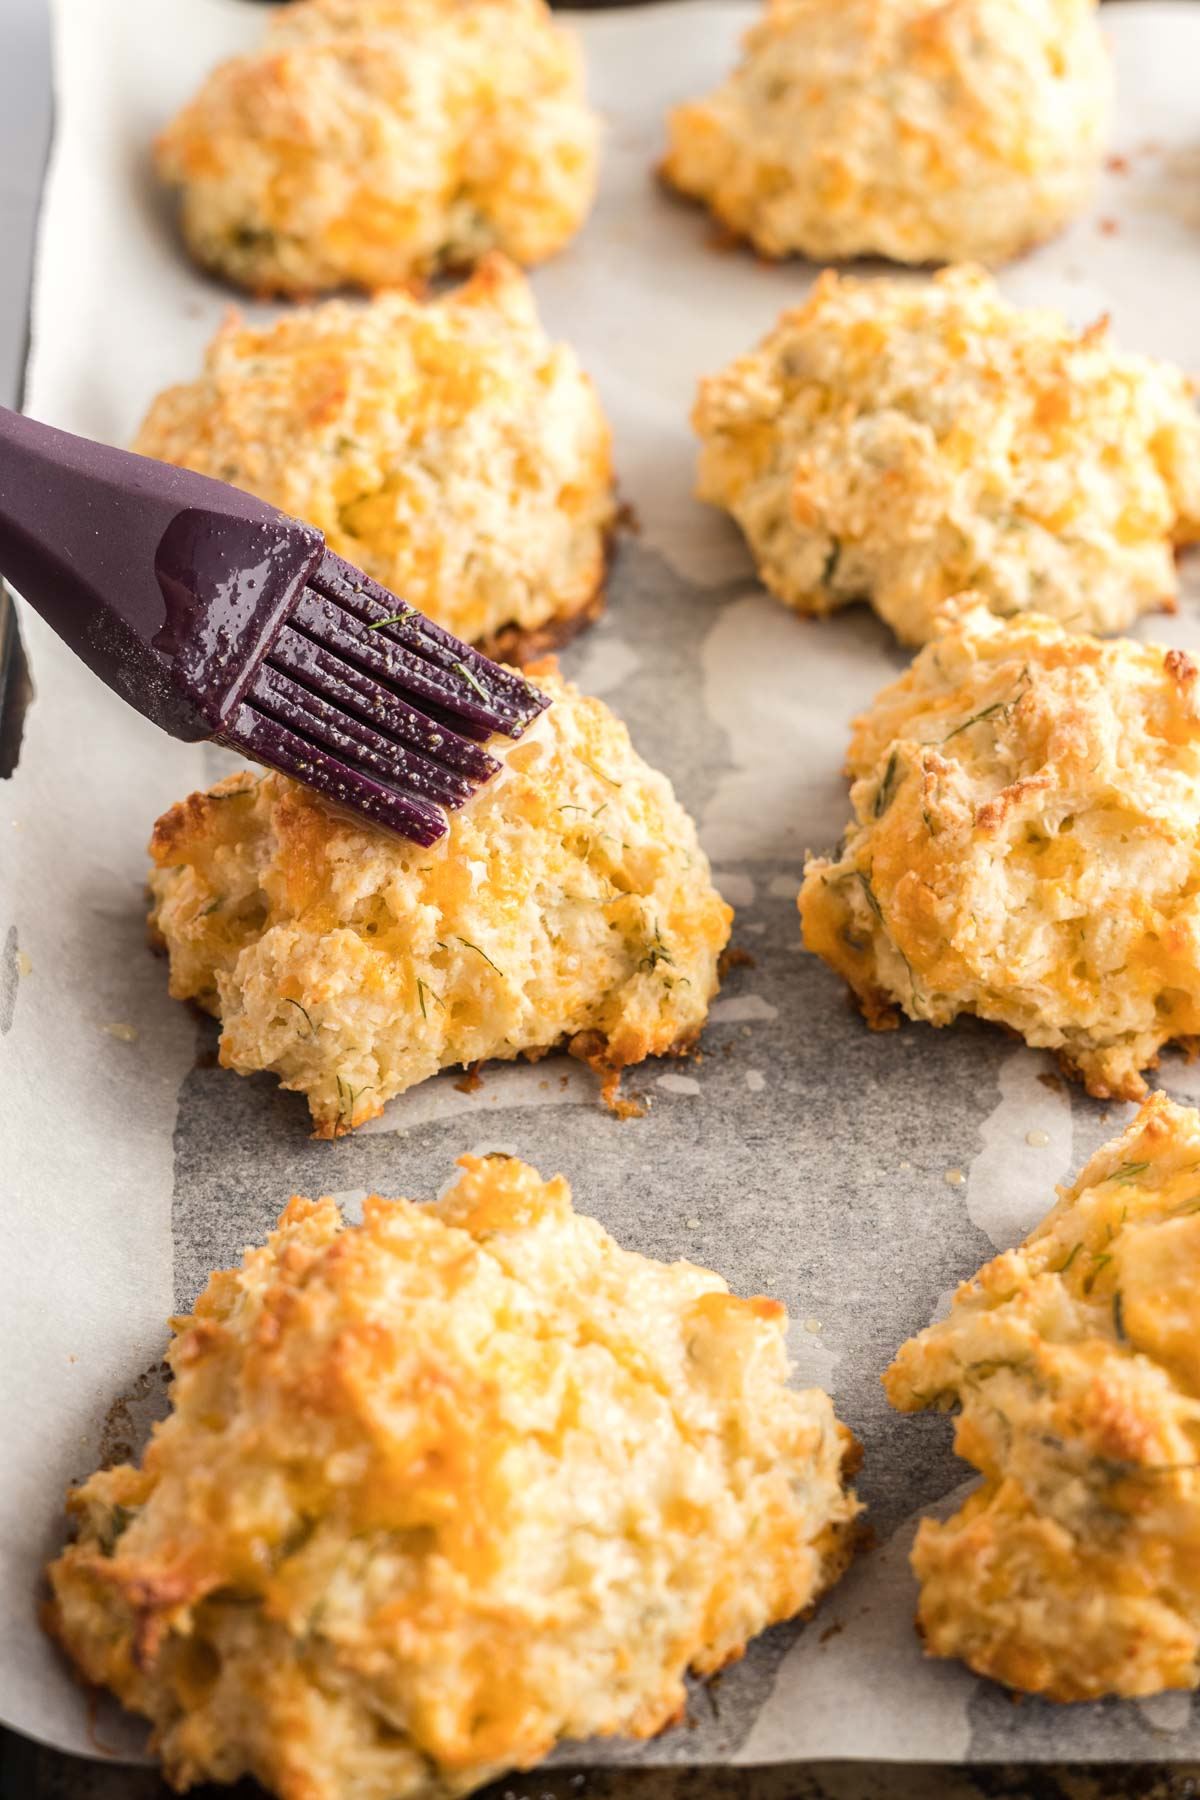 Baked biscuits on a baking sheet being brushed with melted butter using a silicone pastry brush.